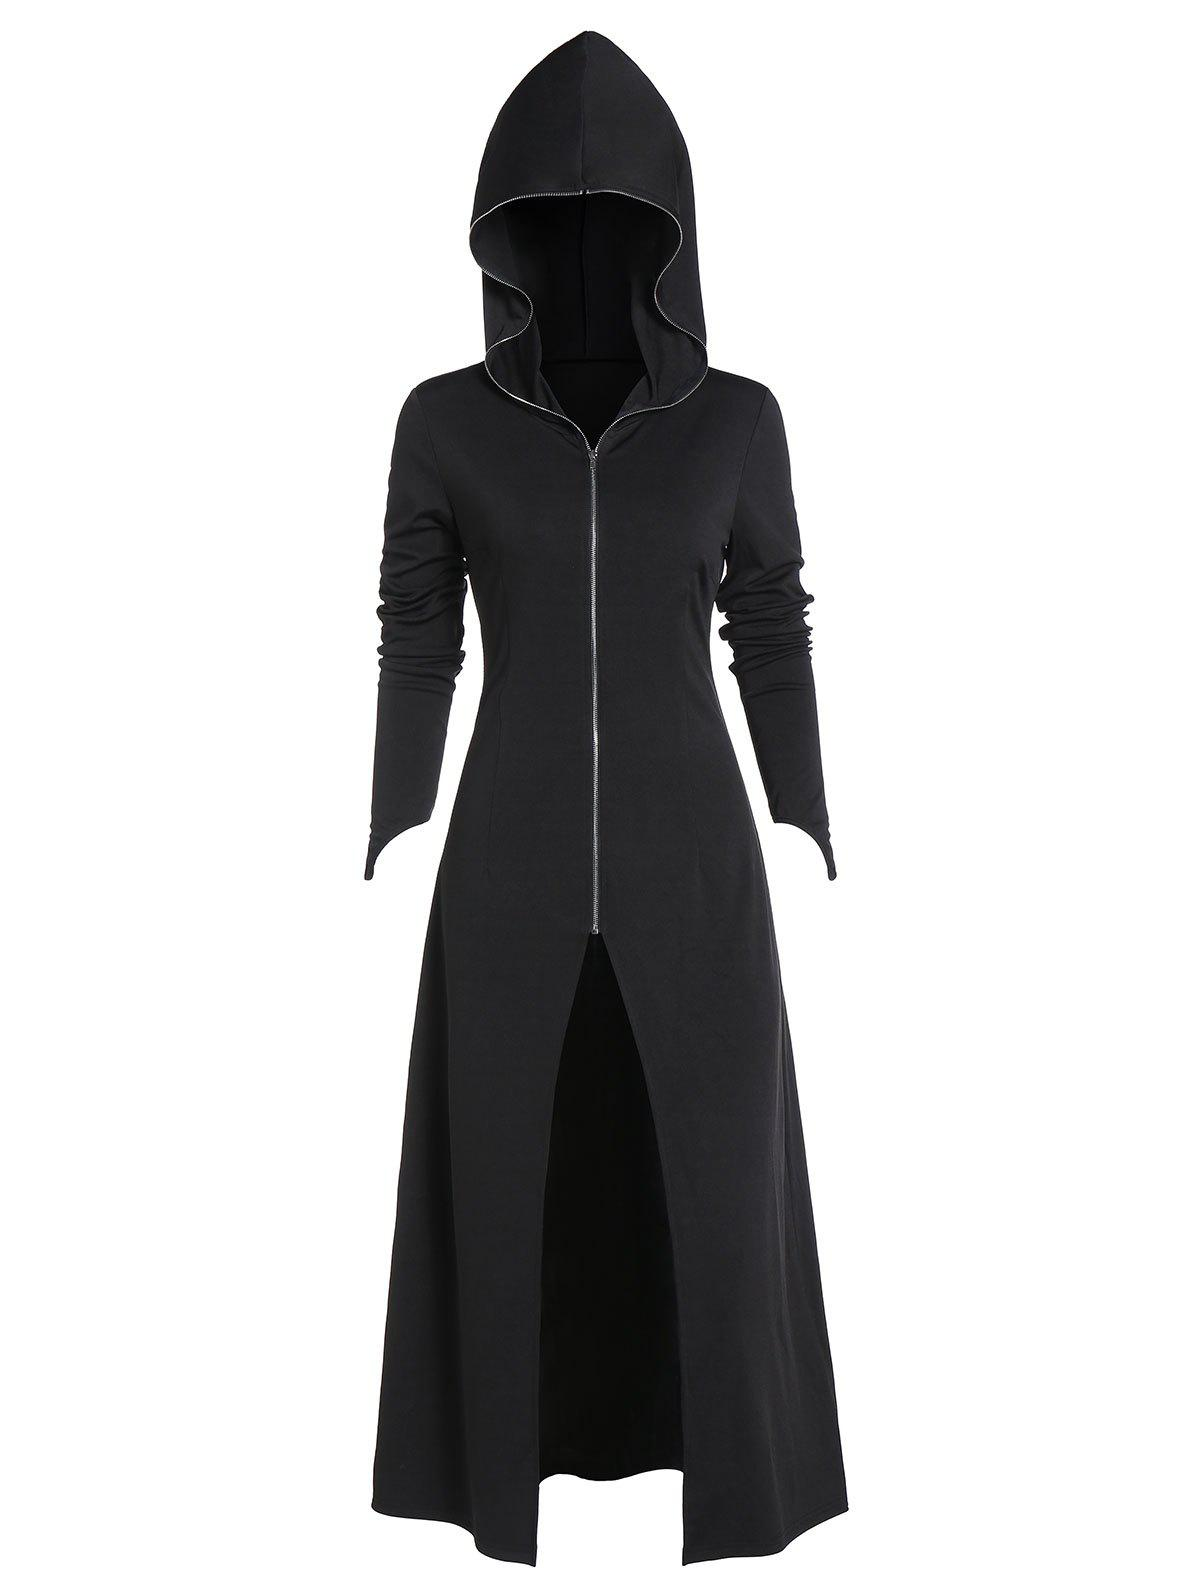 Hooded Zip Up Lace-up Back Gothic Long Coat - BLACK 2XL